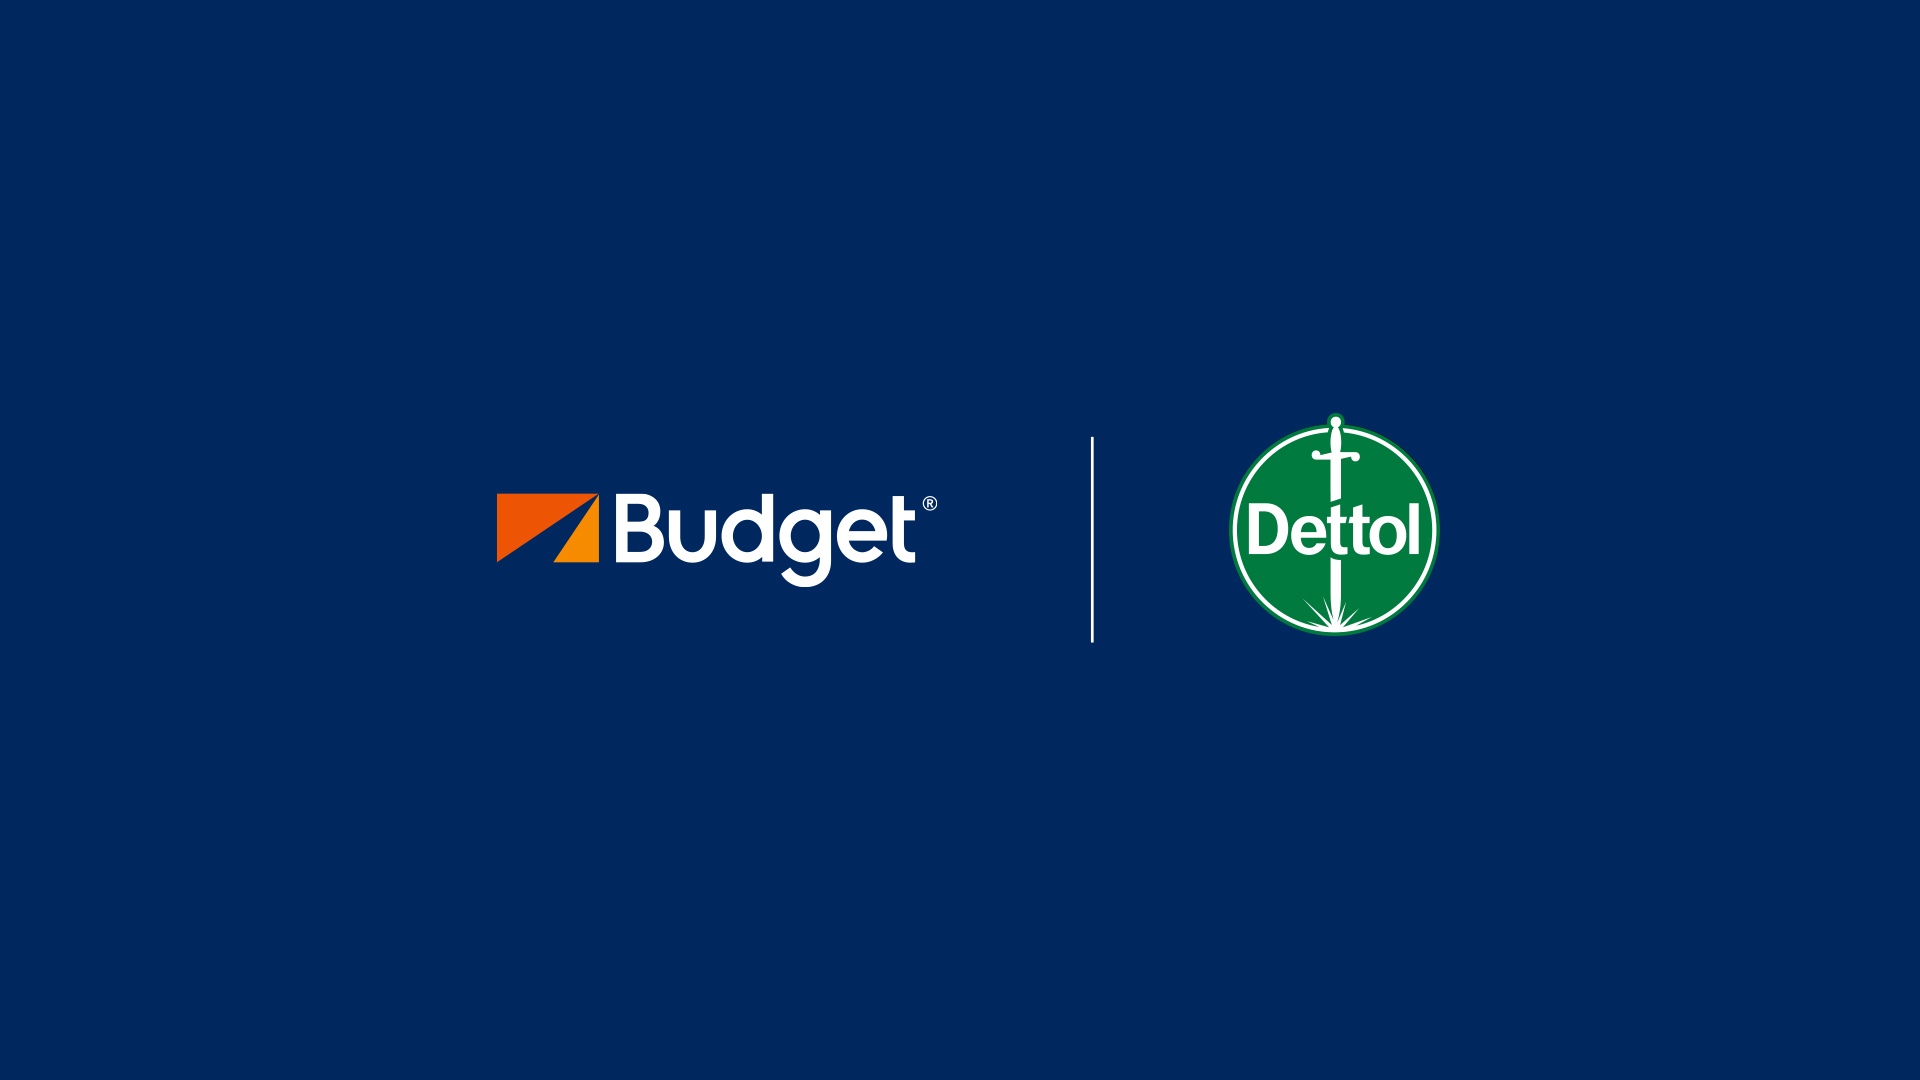 Budget car hire and Dettol in partnership